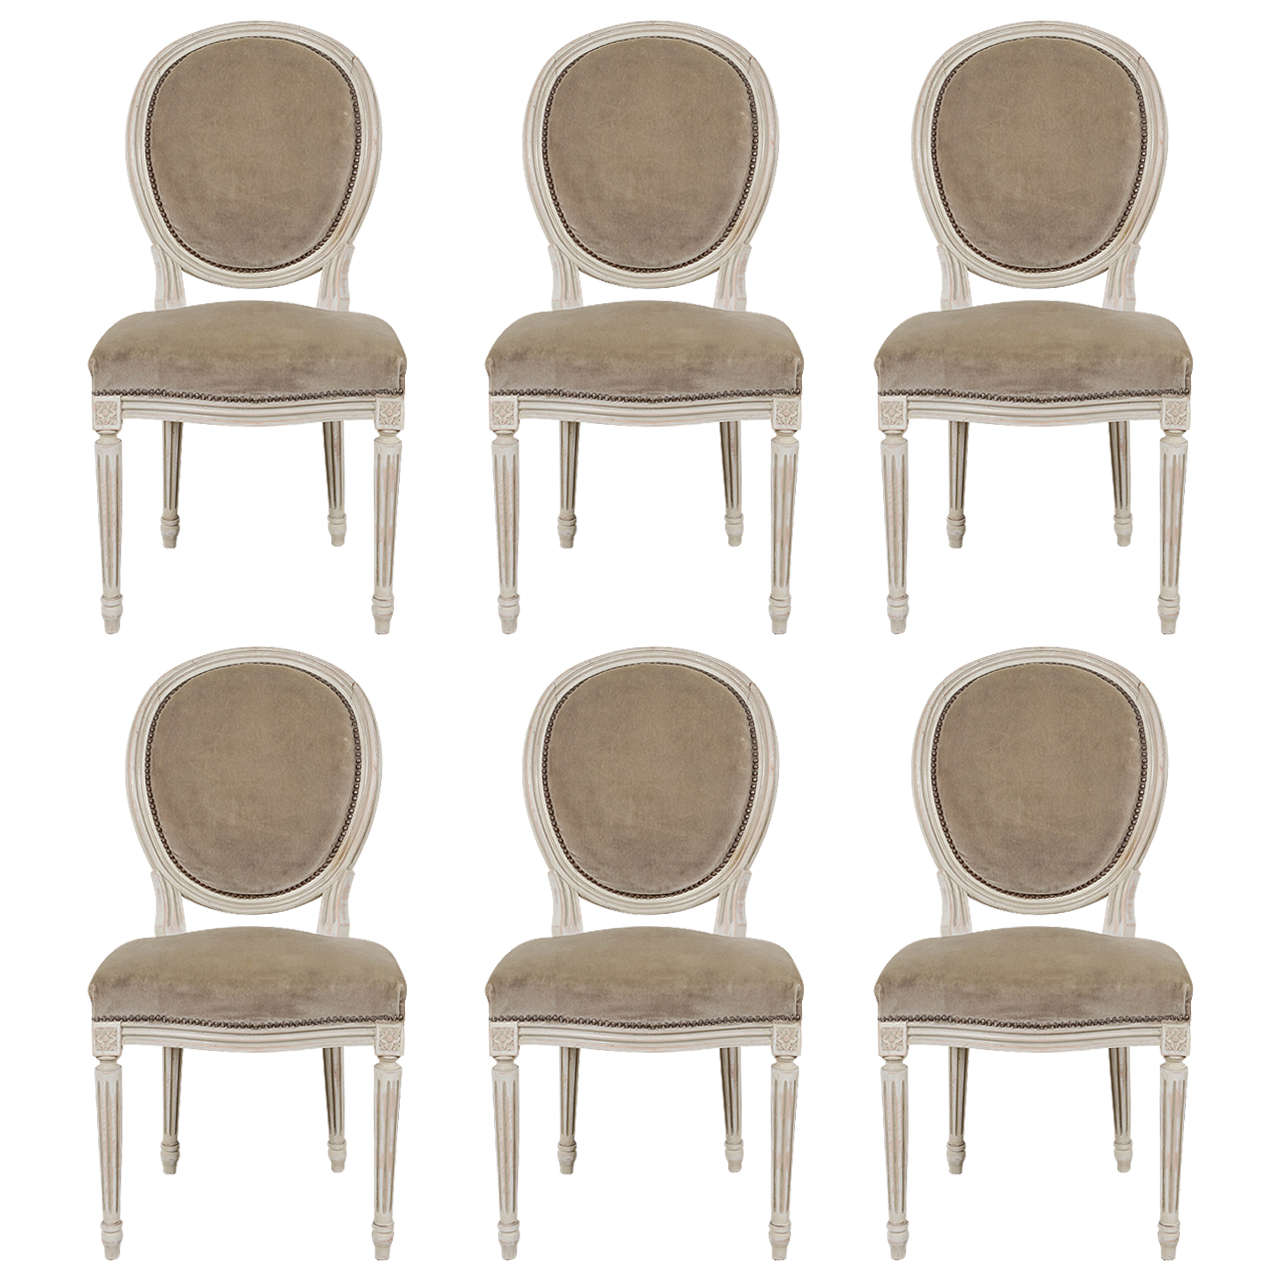 Charming 1900s Louis XVI Style Medallion Dining Chairs At 1stdibs